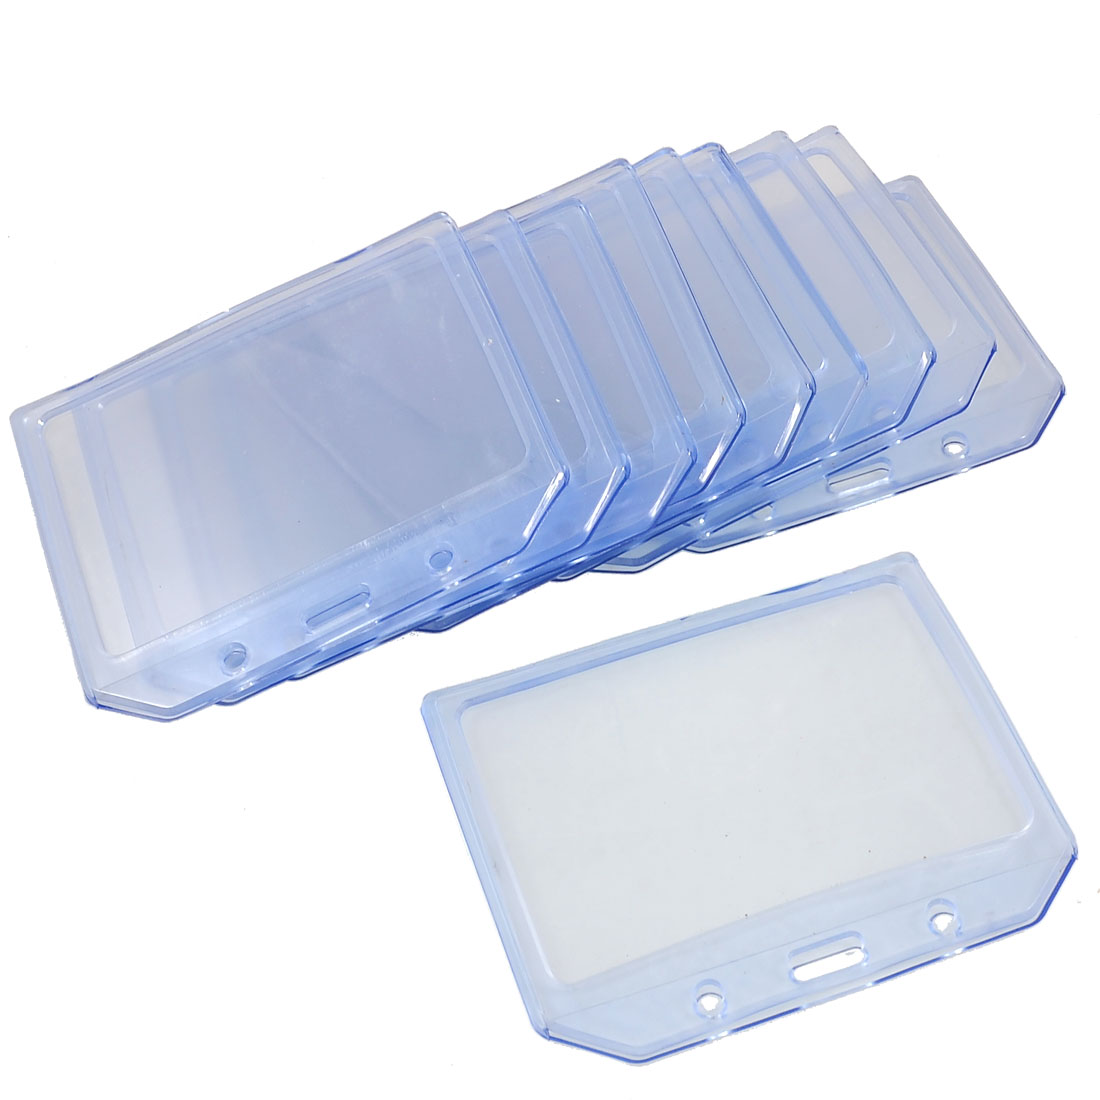 10 Pcs Office Solft Plastic Clear Blue Horizontal B7 ID Card Badge Holders